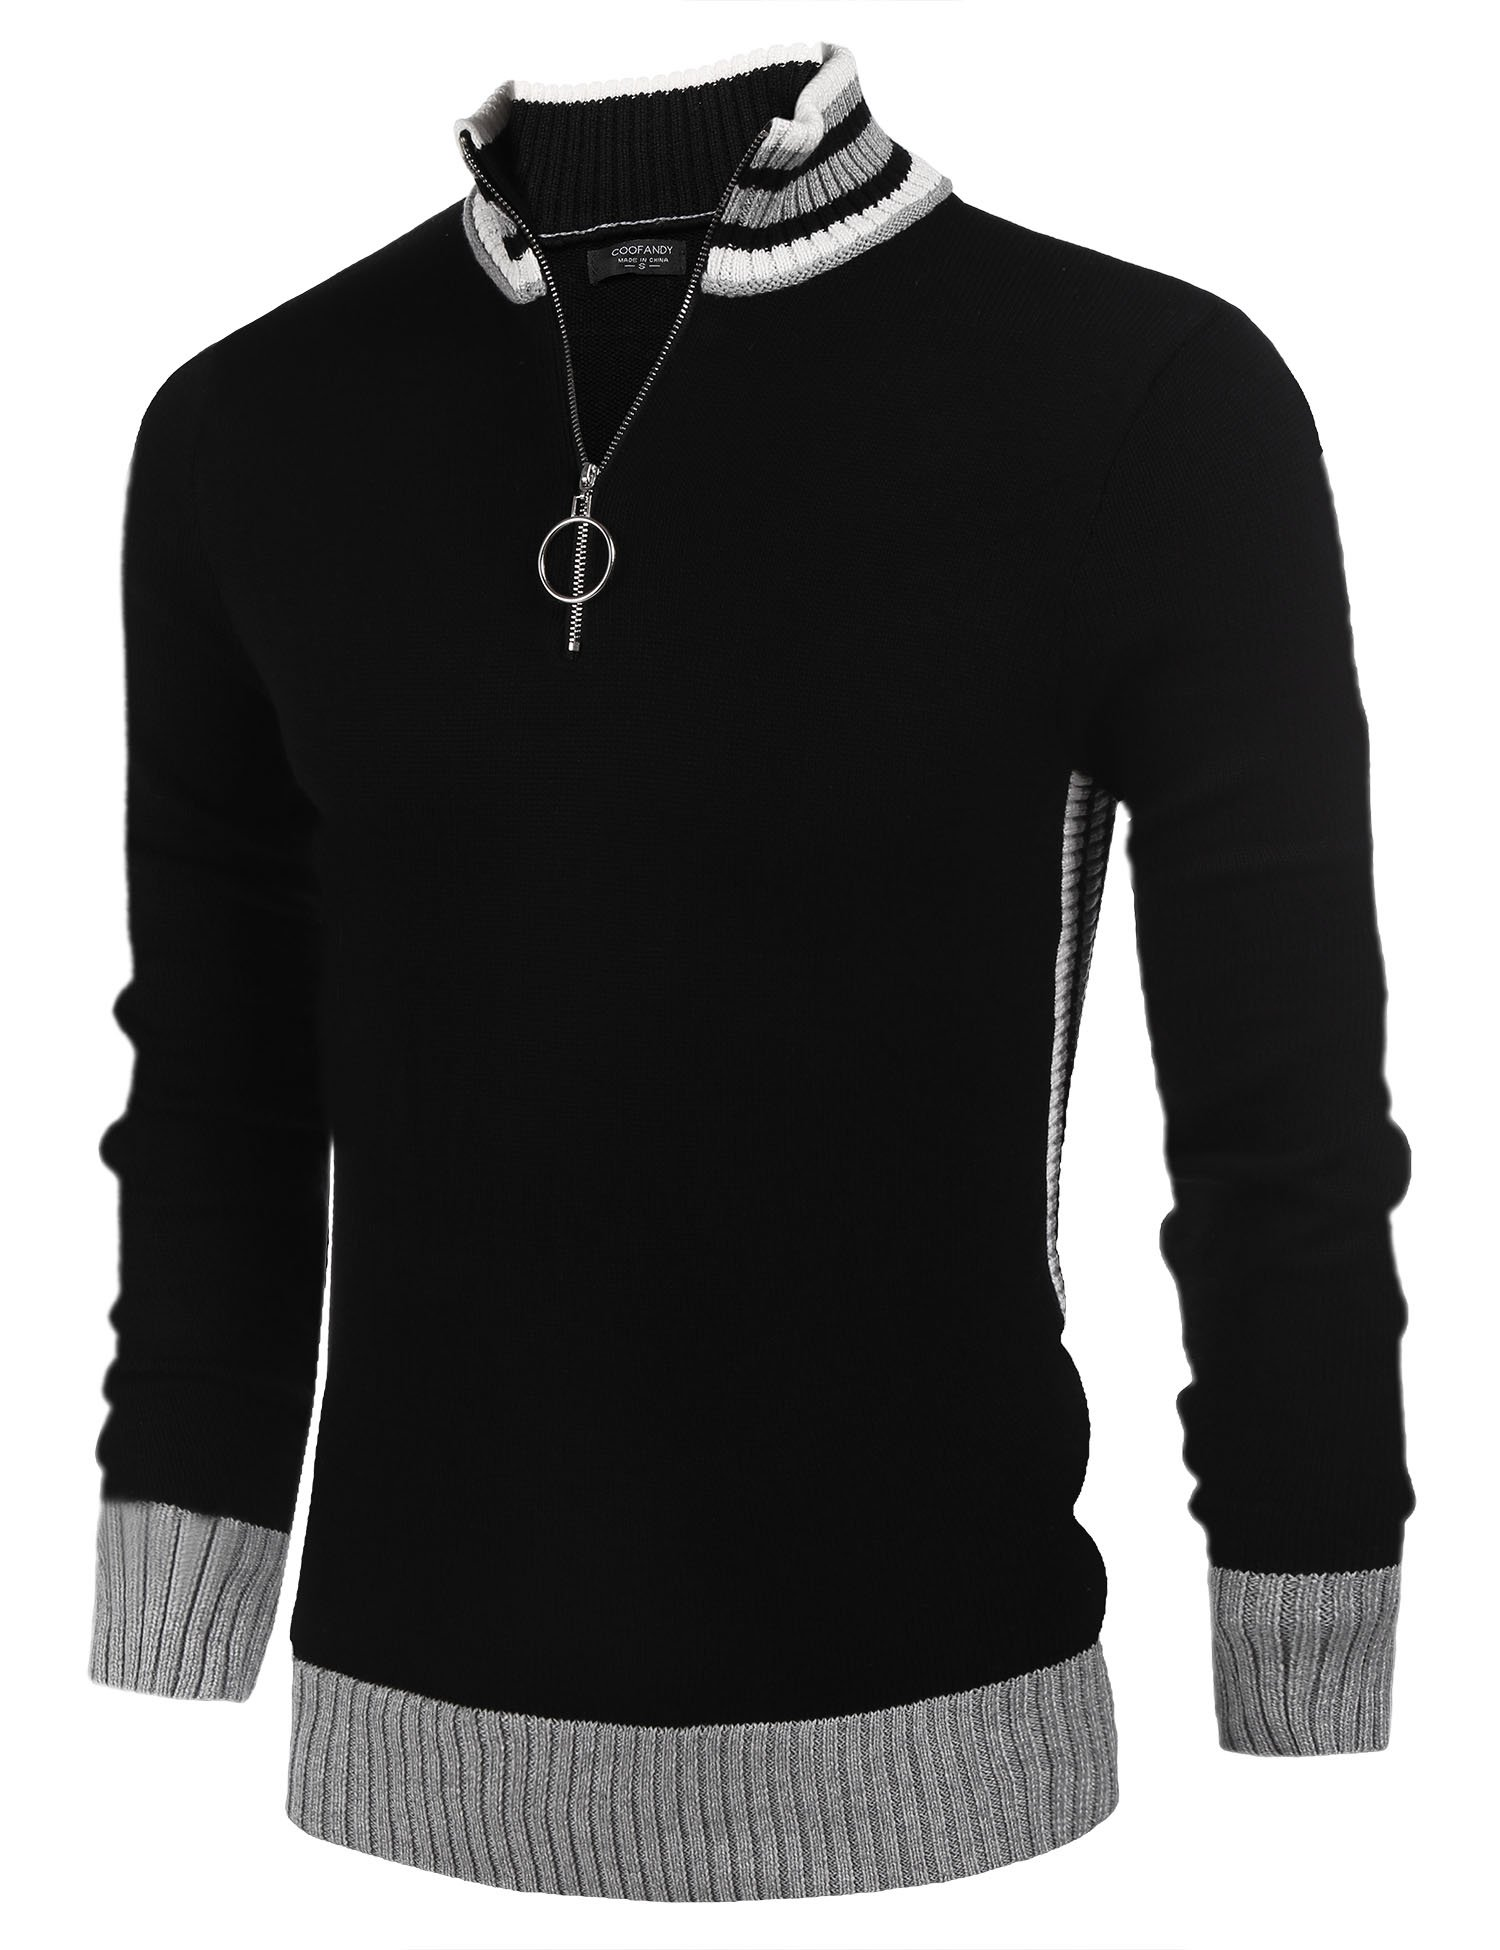 COOFANDY Men's Business Casual Crew Neck Long Sleeve Sweater Quarter-Zip Pullover by COOFANDY (Image #1)